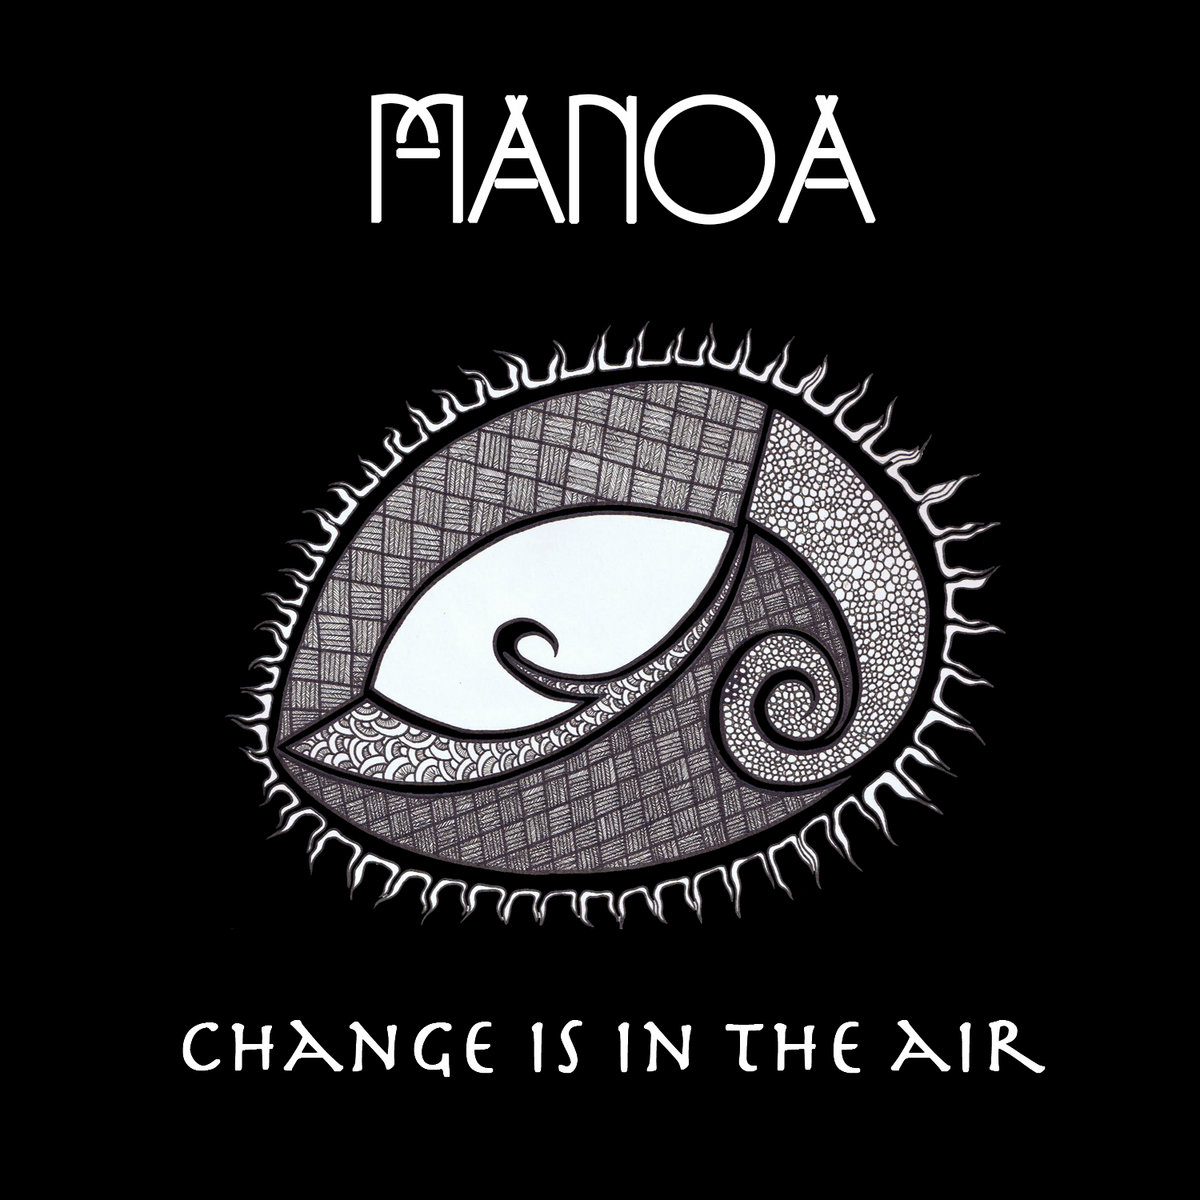 Change Is In The Air by Manoa